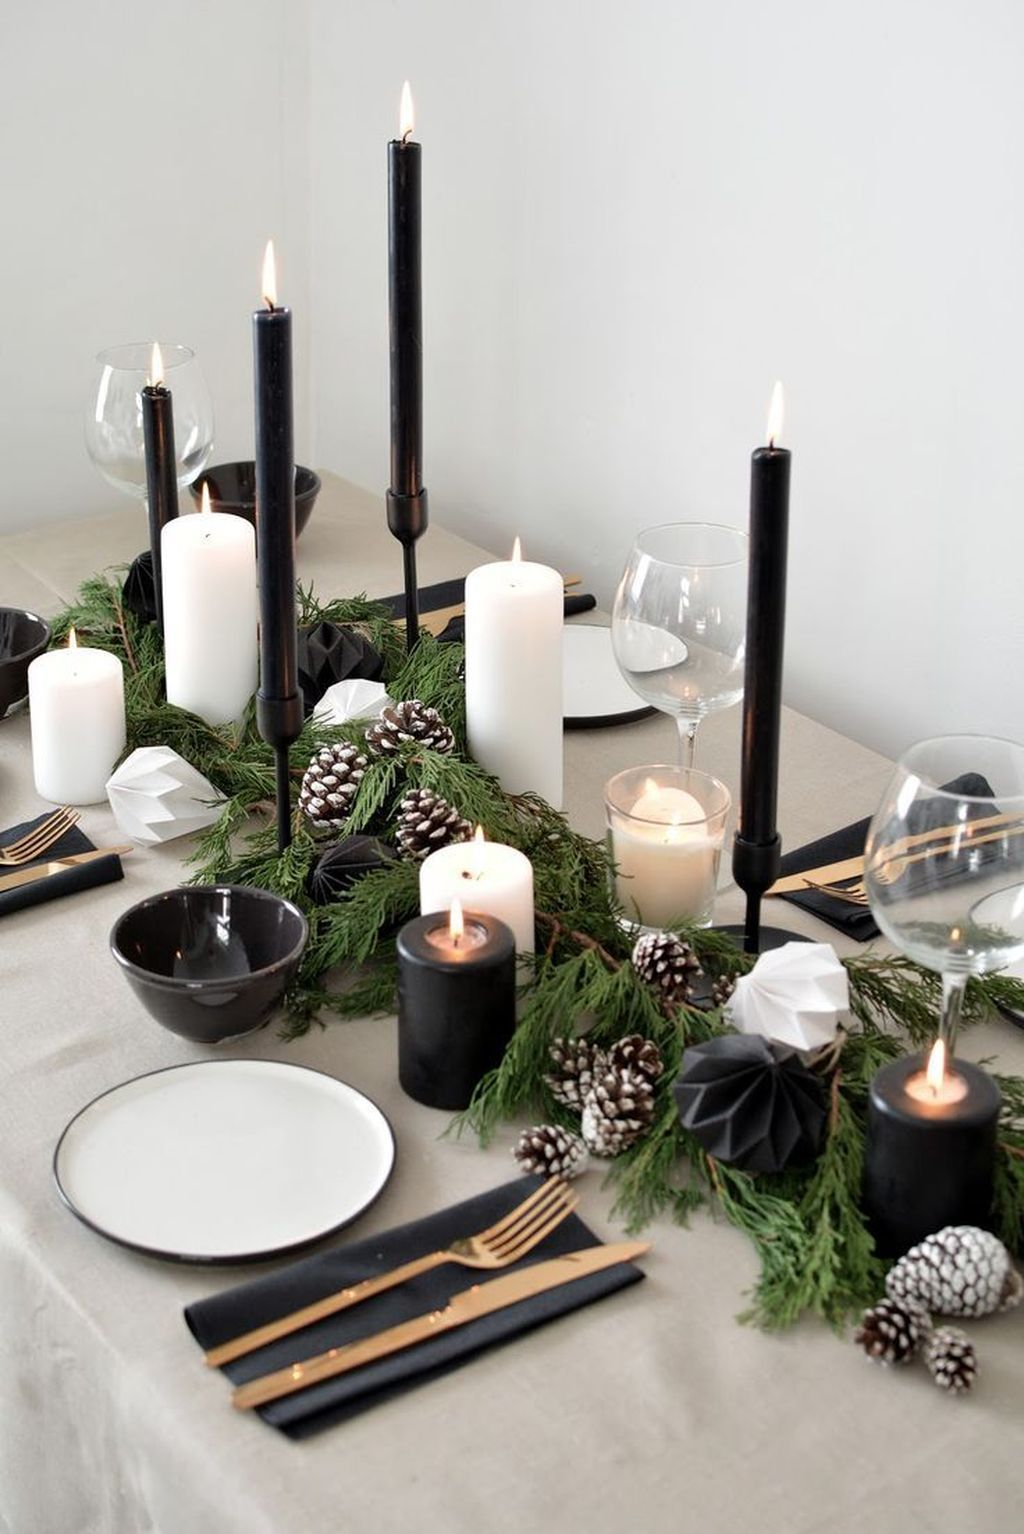 39 Awesome Modern Table Setting Ideas Holiday Table Decorations Christmas Table Decorations Centerpiece Scandinavian Christmas Decorations